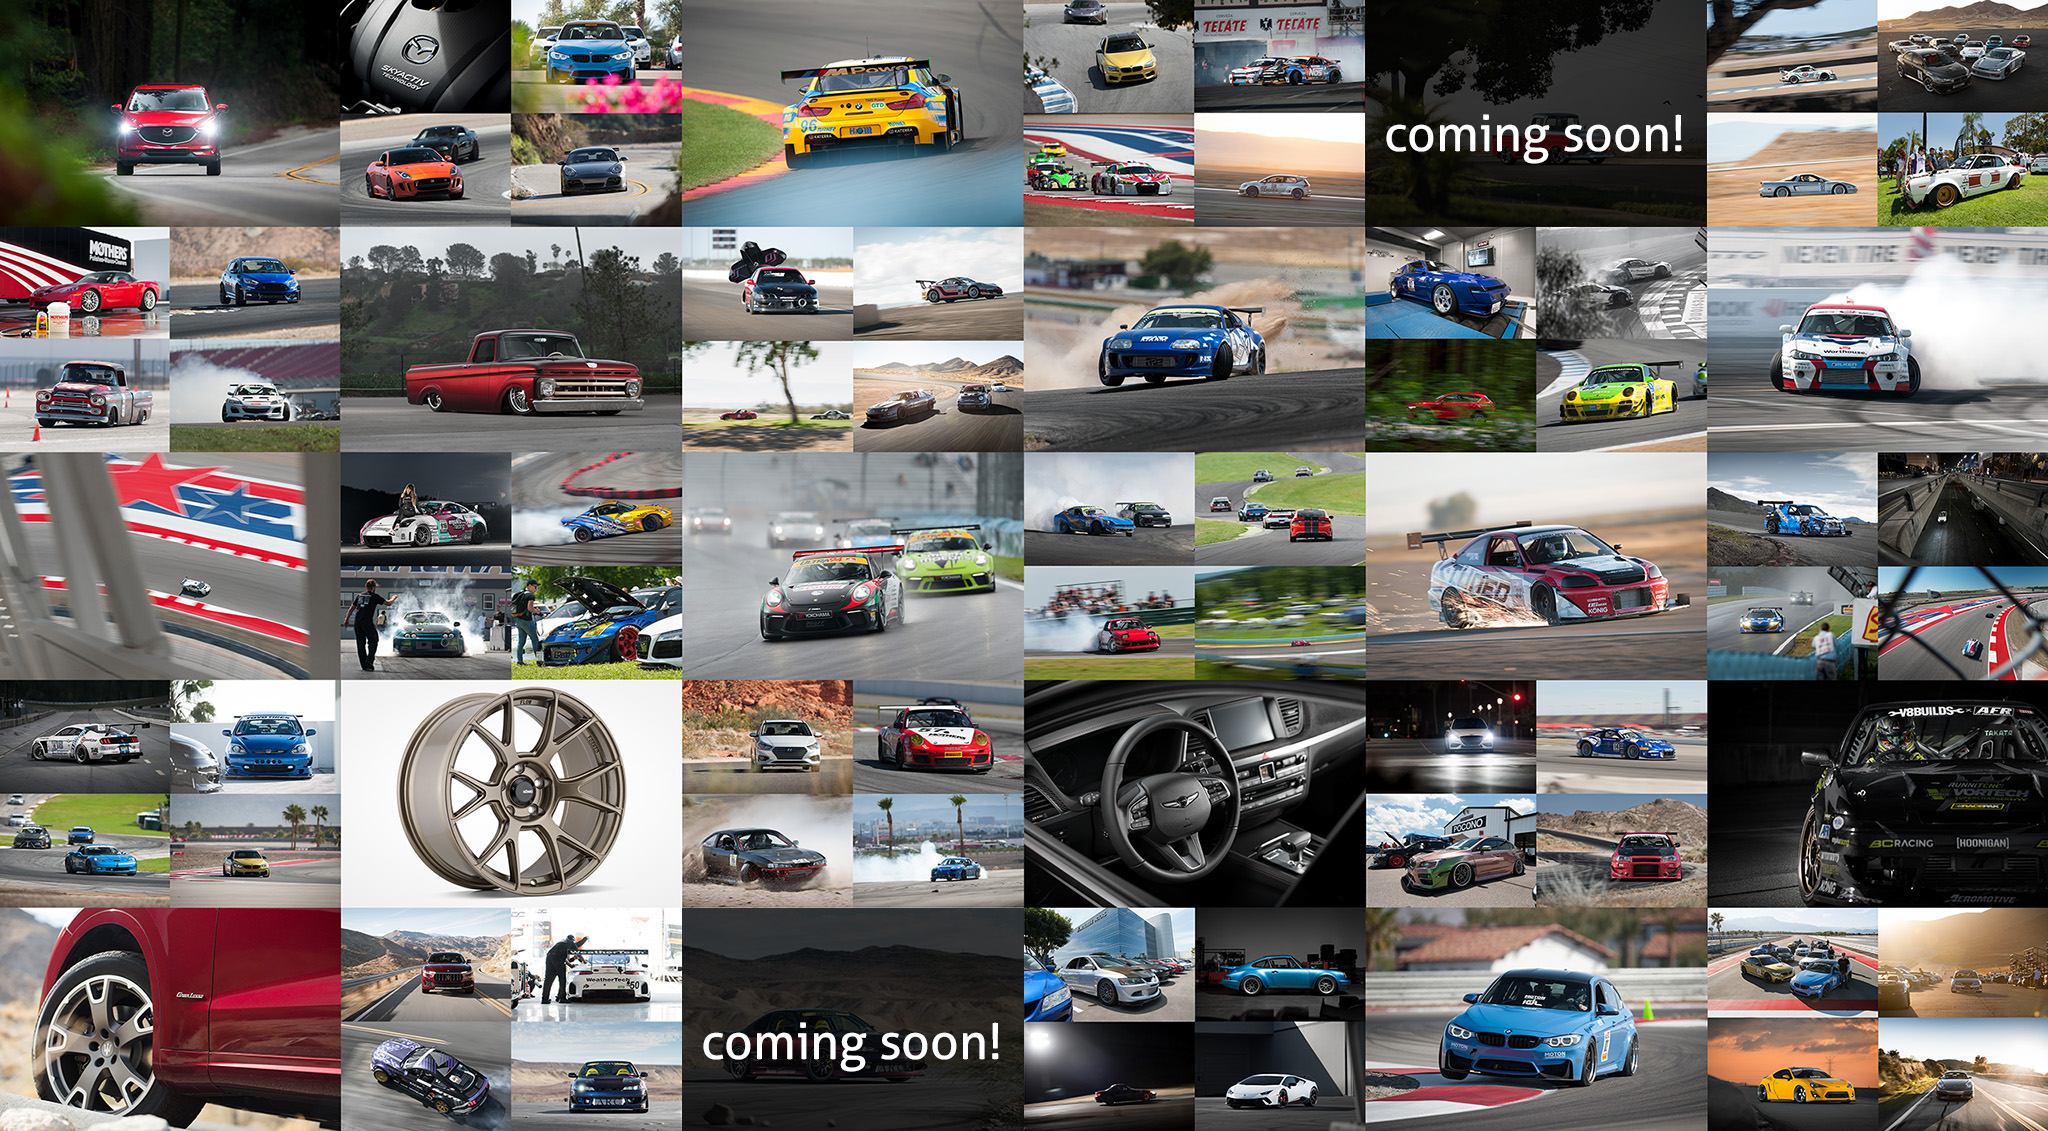 Luke Munnell automotive photography, motorsports photography 2017 Year in Review collage of favorite shoots of the year